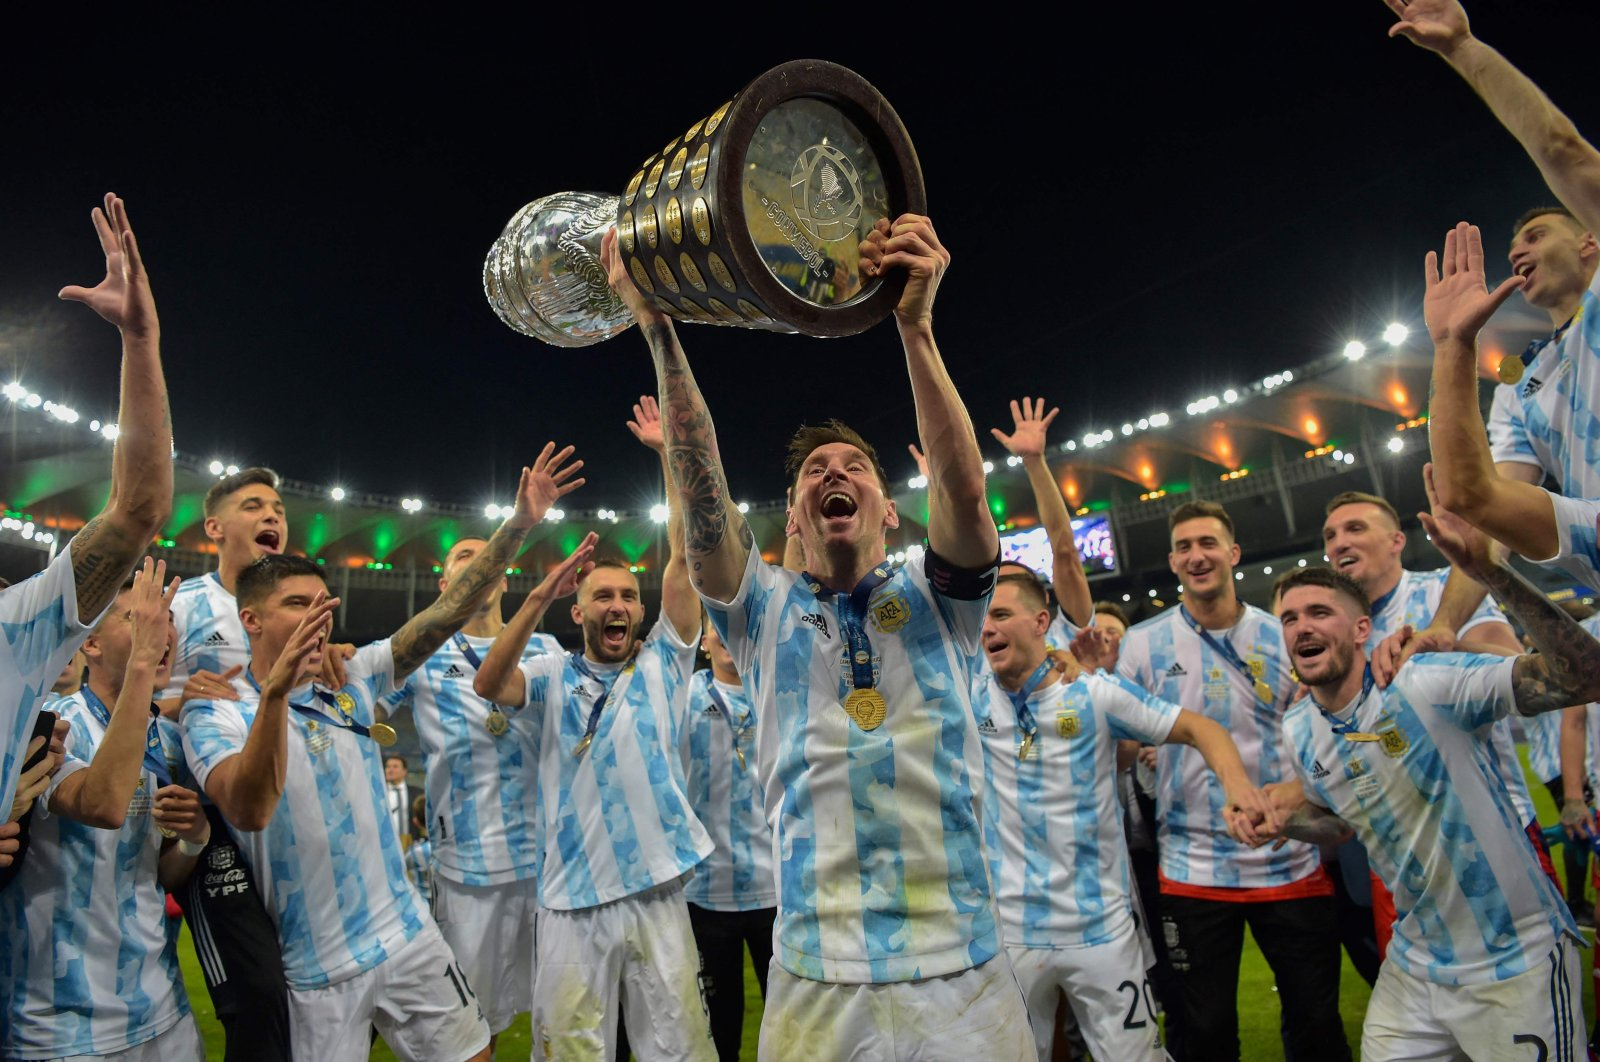 Argentina's Lionel Messi lifts the Copa America trophy as he celebrates with teammates after winning the final against Brazil at Maracana Stadium in Rio de Janeiro, Brazil, July 10, 2021. (AFP Photo)